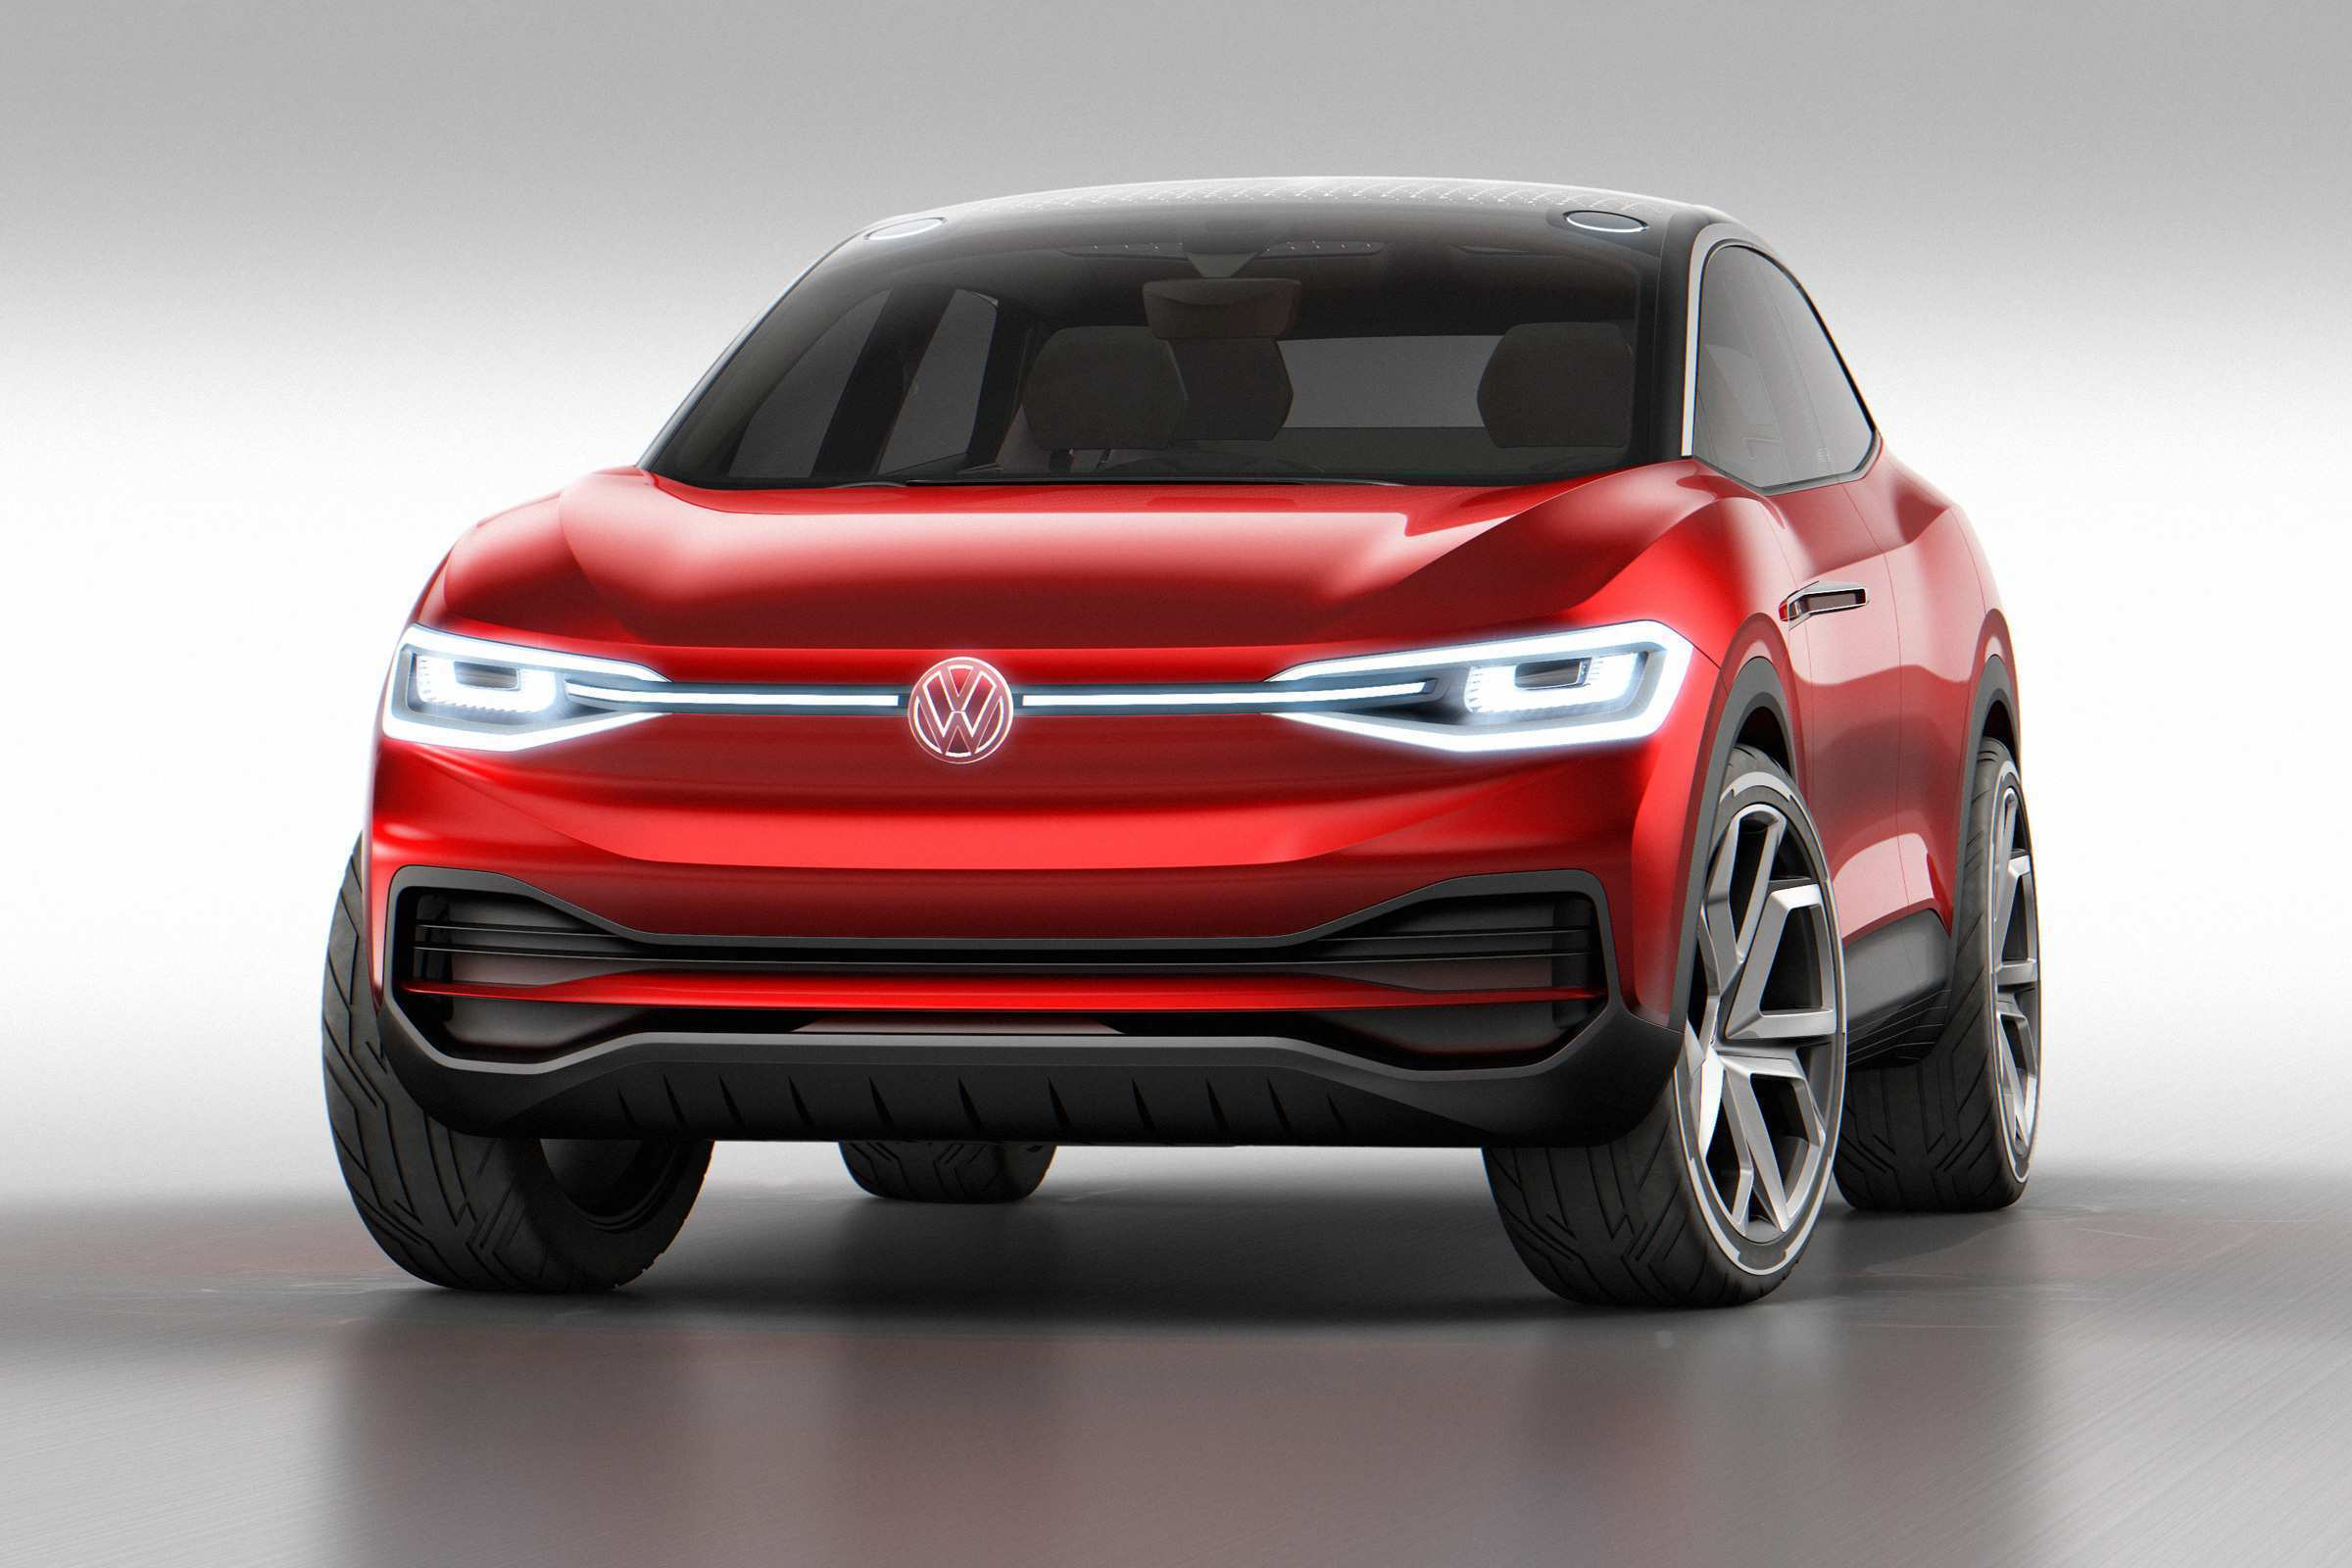 20 All New Volkswagen Electric Suv 2020 Redesign And Review